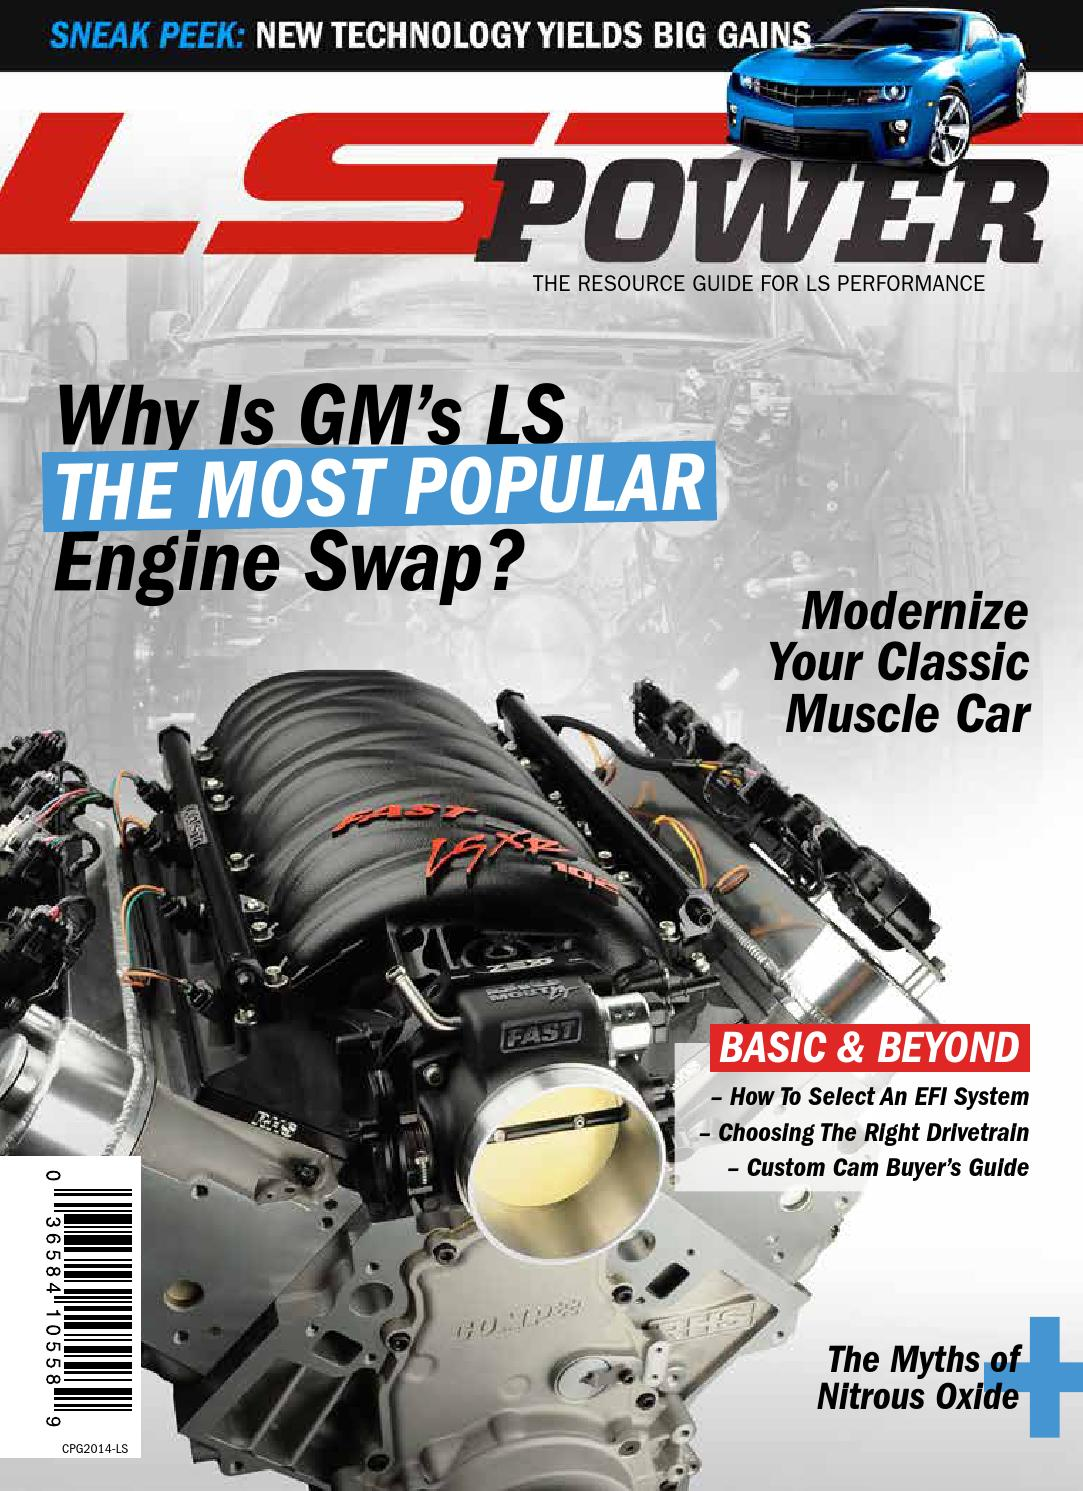 2014 Ls Power Magazine By Comp Performance Group Issuu 6 0 Gm Lq4 Engine Diagram